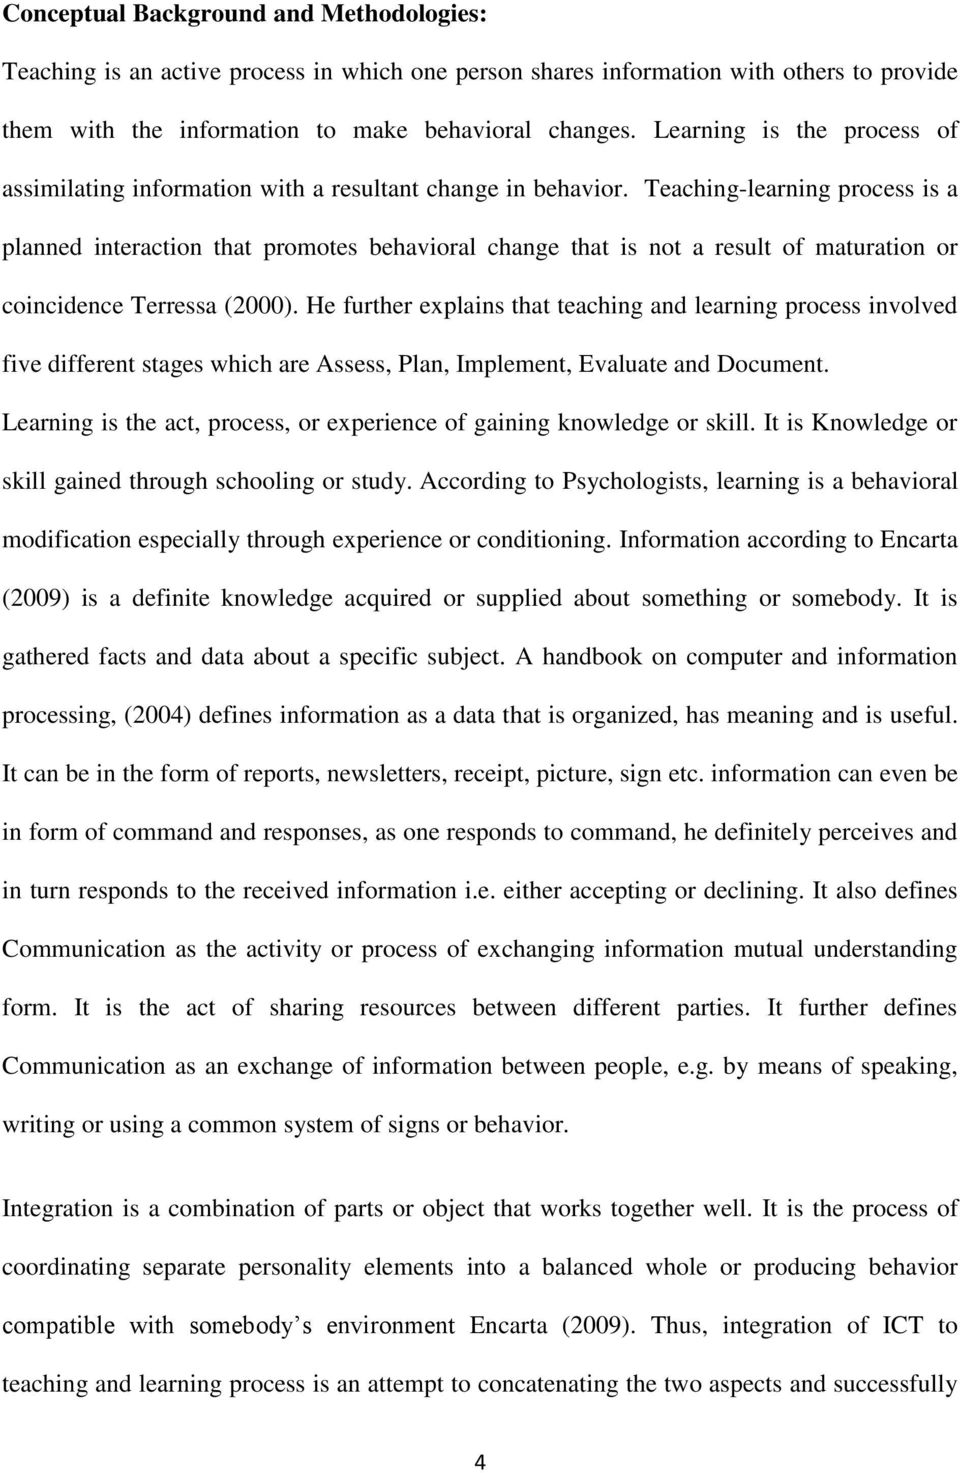 Teaching-learning process is a planned interaction that promotes behavioral change that is not a result of maturation or coincidence Terressa (2000).